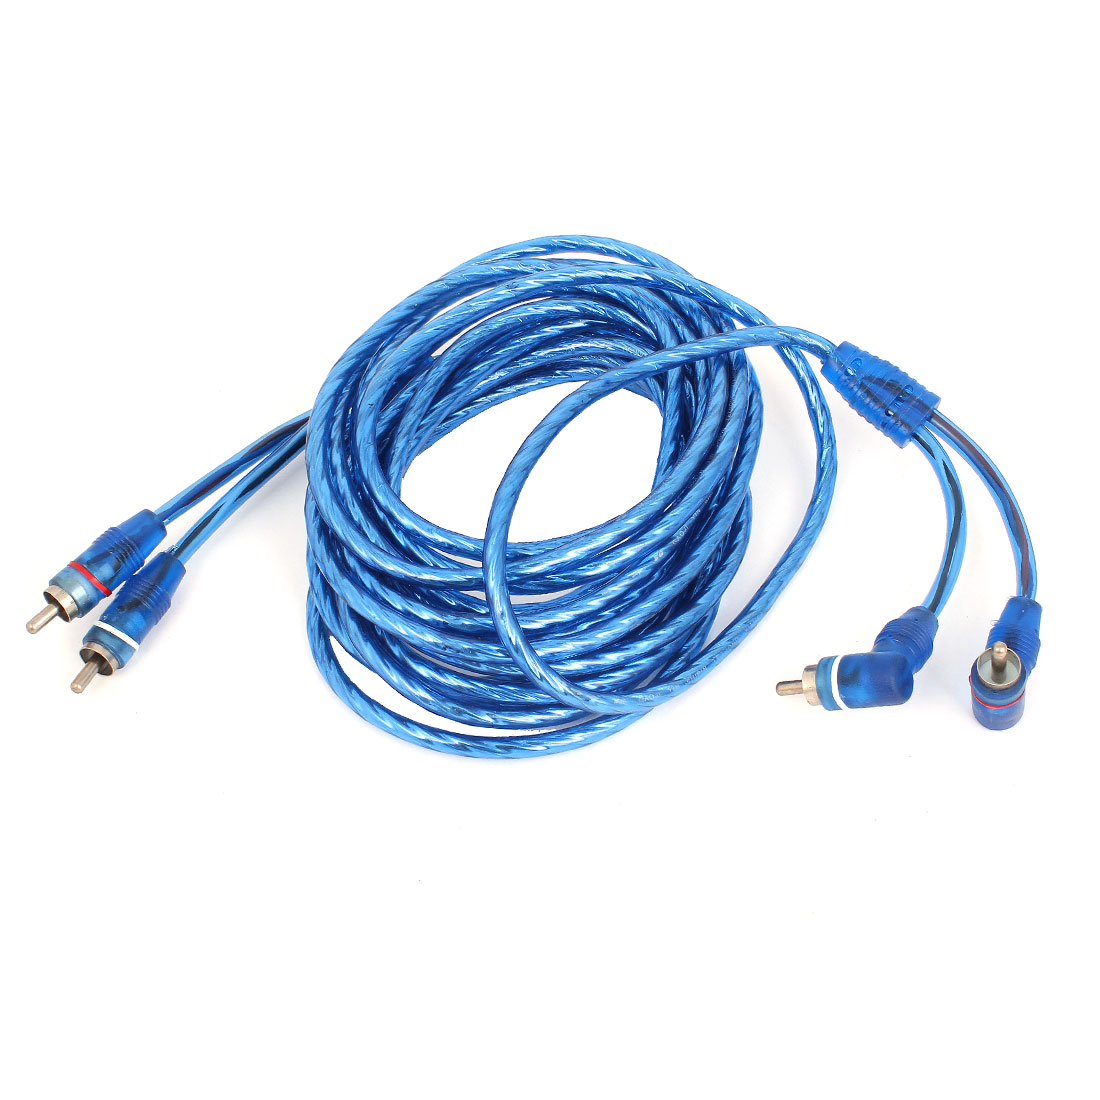 Unique Bargains Automobile Car Audio Video 2 RCA M/M AV Cable Cord Wire Blue 5 Meter